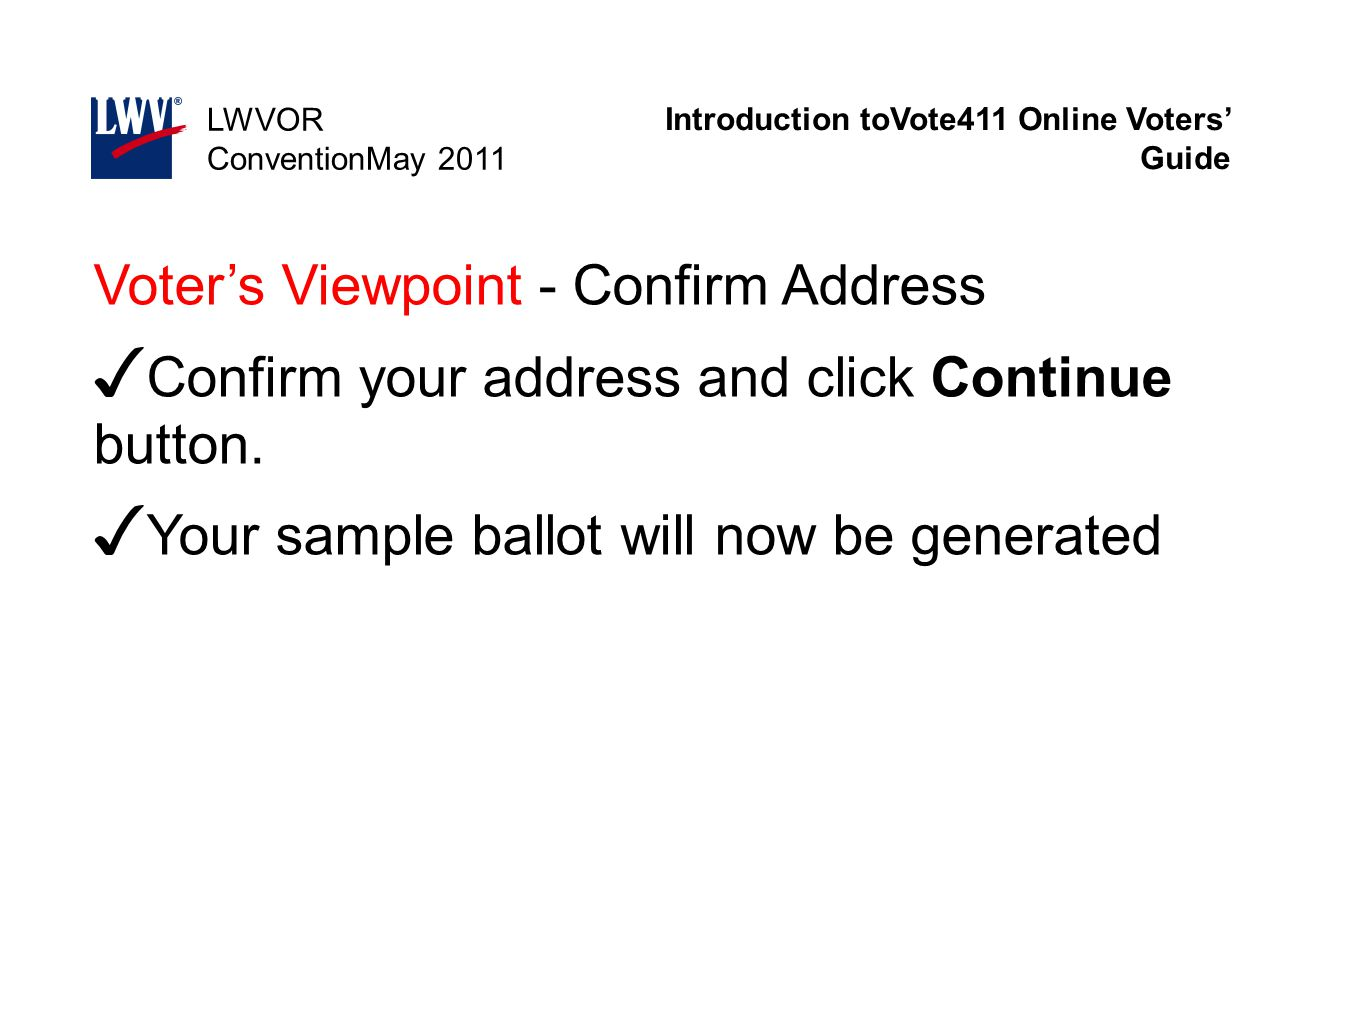 Introduction toVote411 Online Voters' Guide LWVOR ConventionMay 2011 Voter's Viewpoint - Confirm Address ✓ Confirm your address and click Continue but